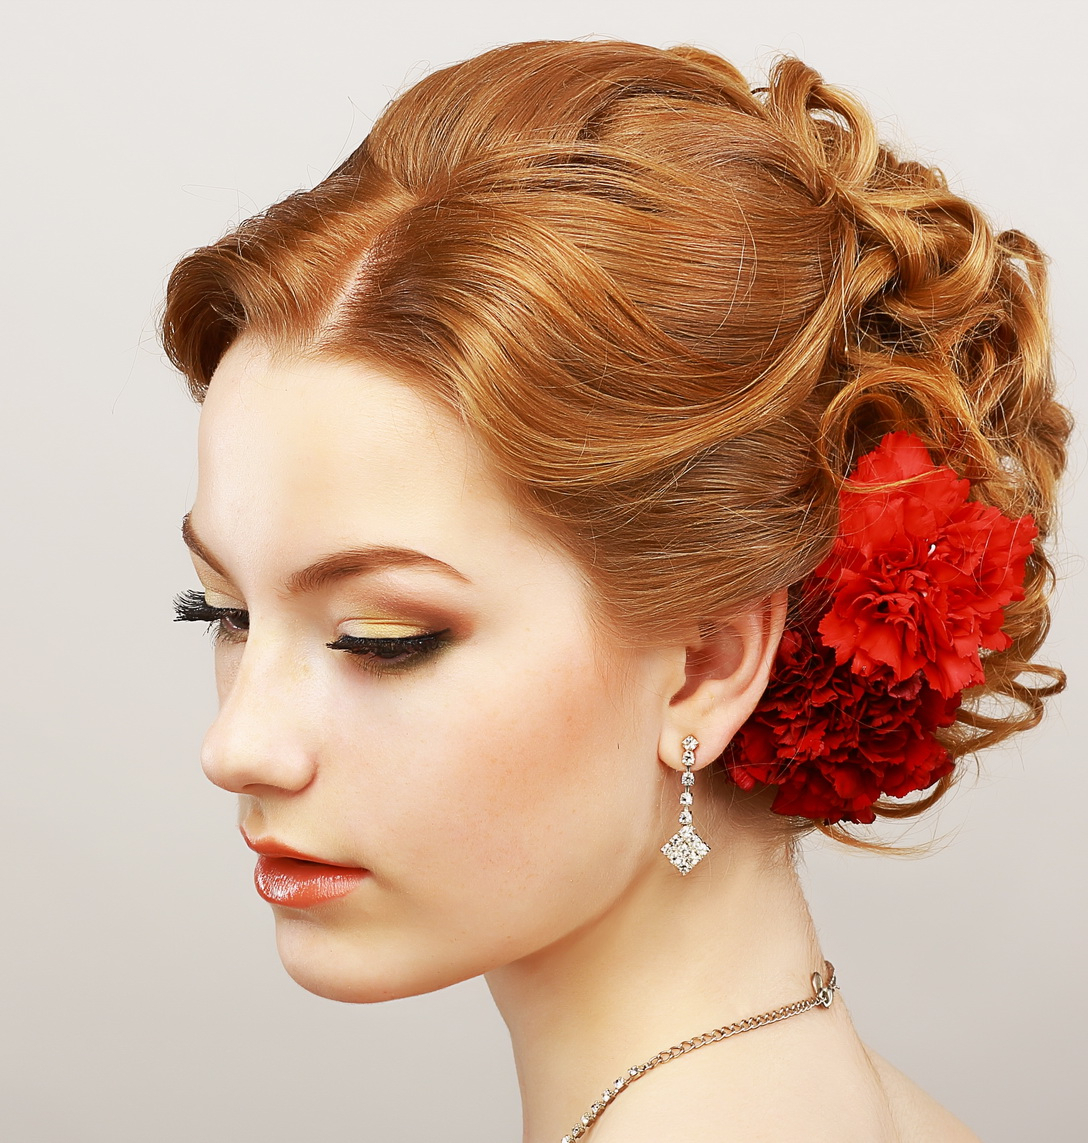 16 Easy Prom Hairstyles For Short And Medium Length Hair For Short Hairstyles For Prom Updos (View 12 of 25)